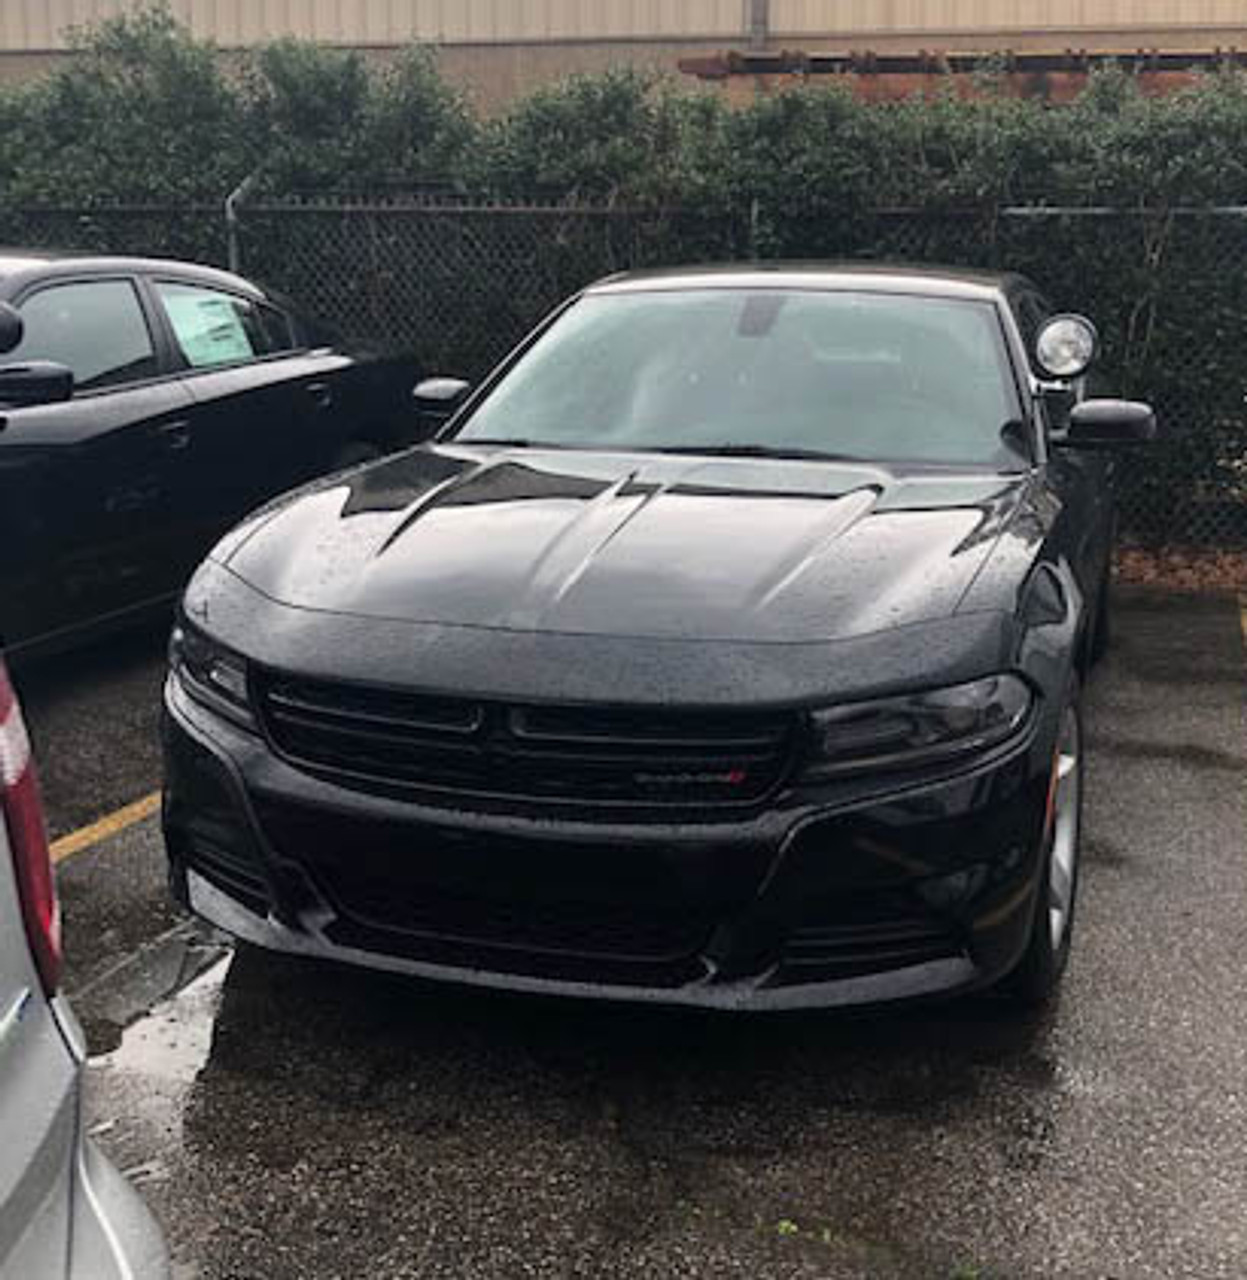 New 2021 Black Dodge Charger PPV V8 RWD, ready to be built as a Slick-Top Patrol Package Police Pursuit Car,  choose any color LED Lights, + Delivery